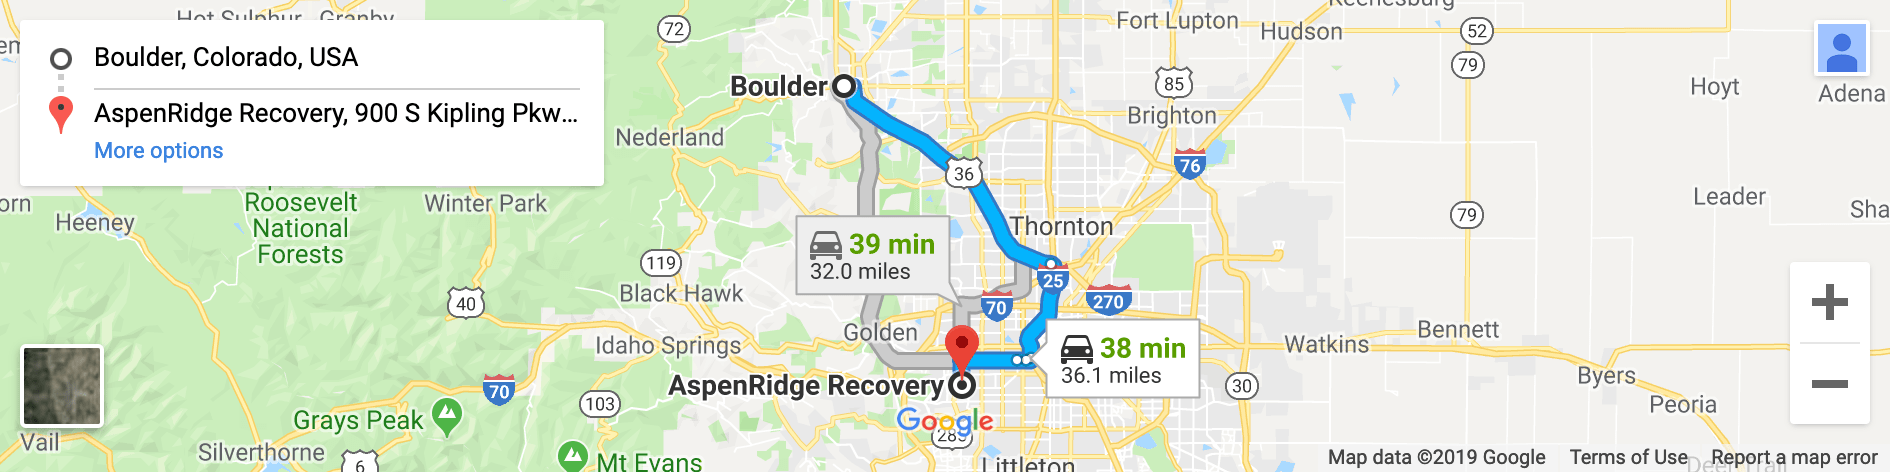 Boulder addiction resources map